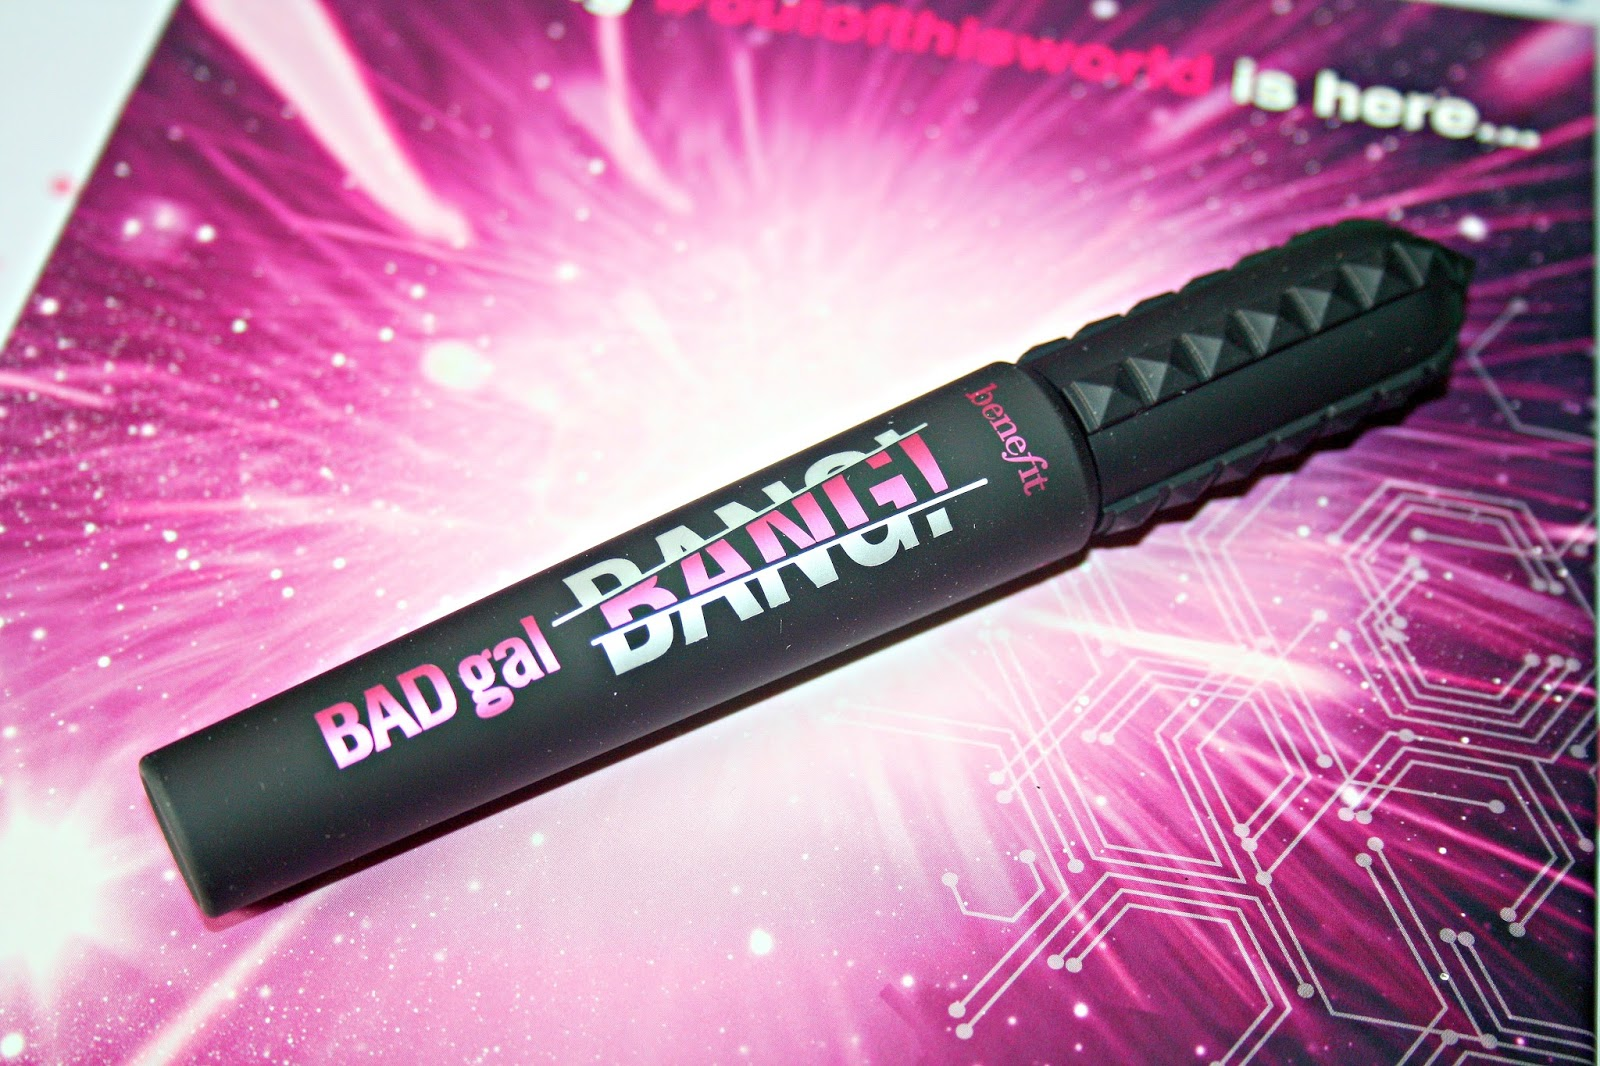 df20a56992d Anything, aero-particle inclusion is said to ensure that the mascara  formula can be layered up for the maximum impact such as adding volume,  length and curl ...